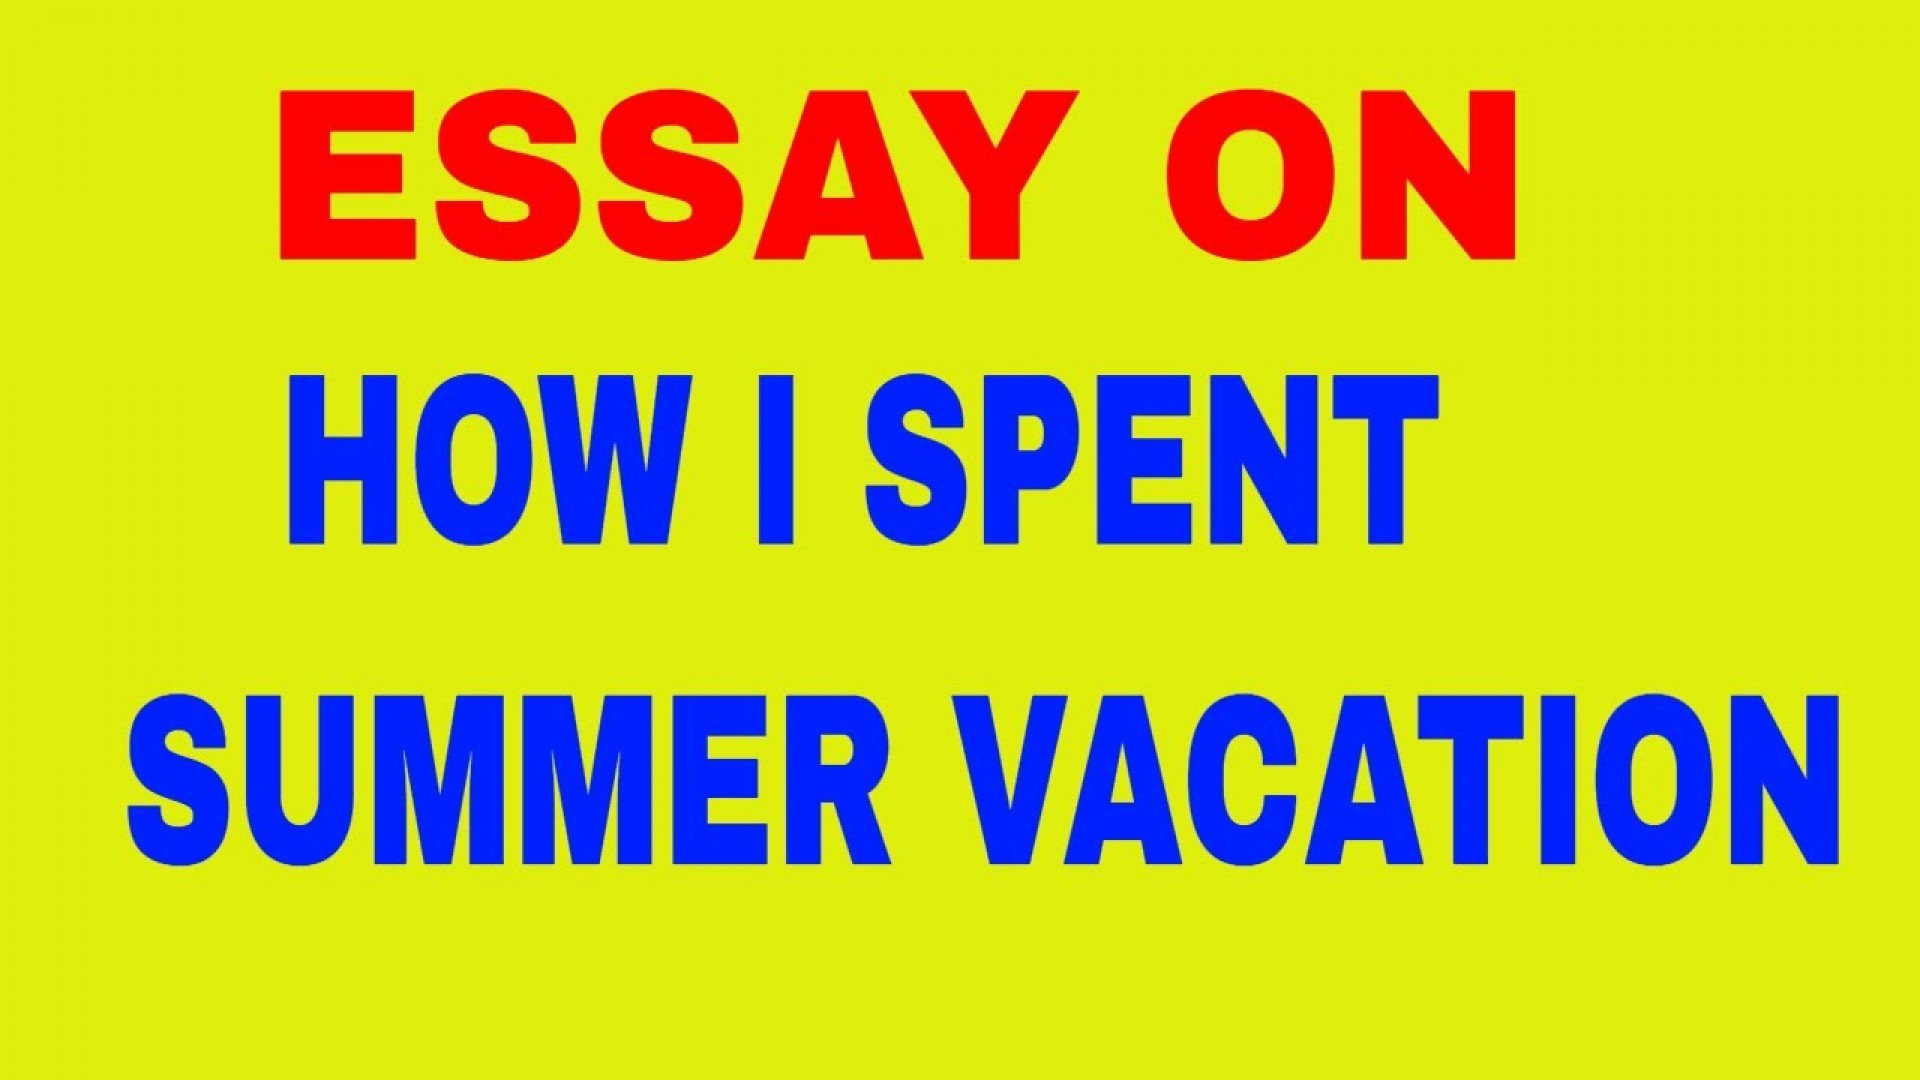 021 Maxresdefault Summer Vacation Essay Frightening In Hindi 300-400 Words On For Class 2 Students Urdu How I Spend My 1920